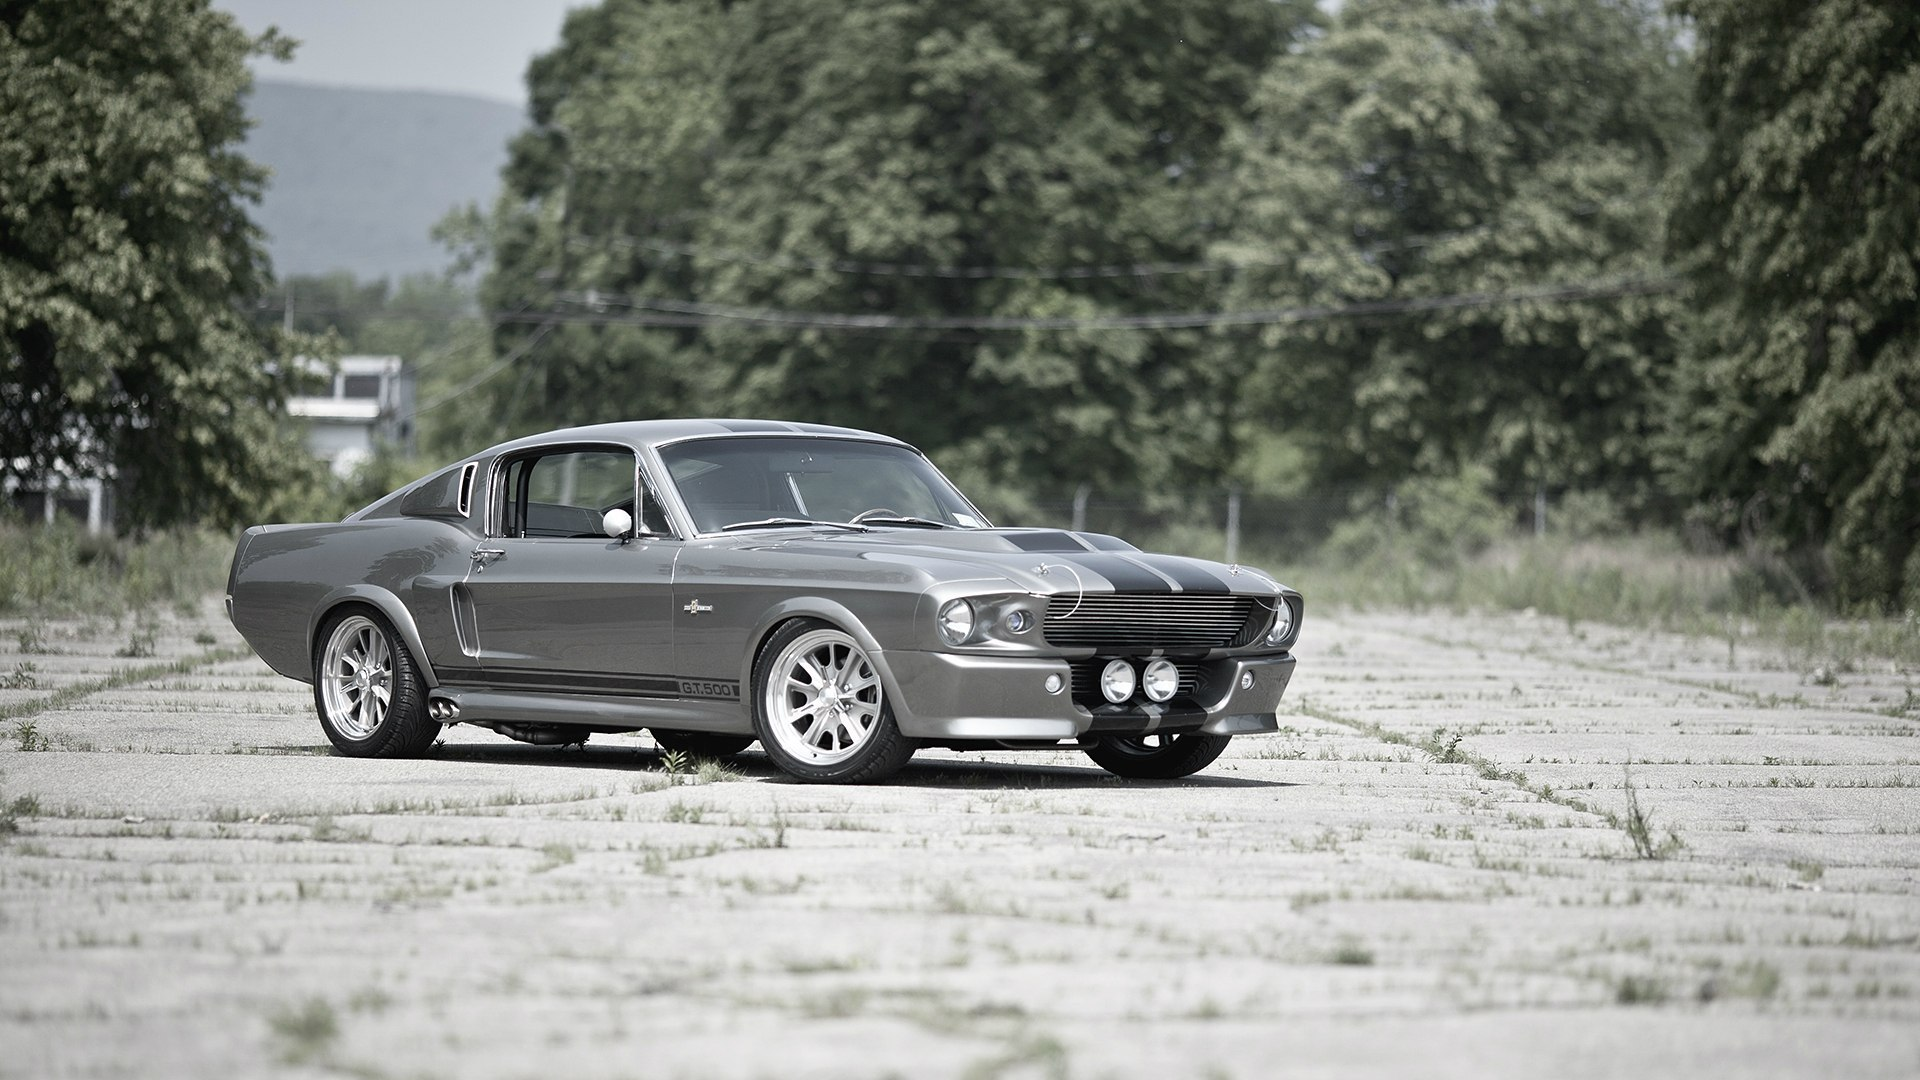 vehicles ford mustang wallpaper